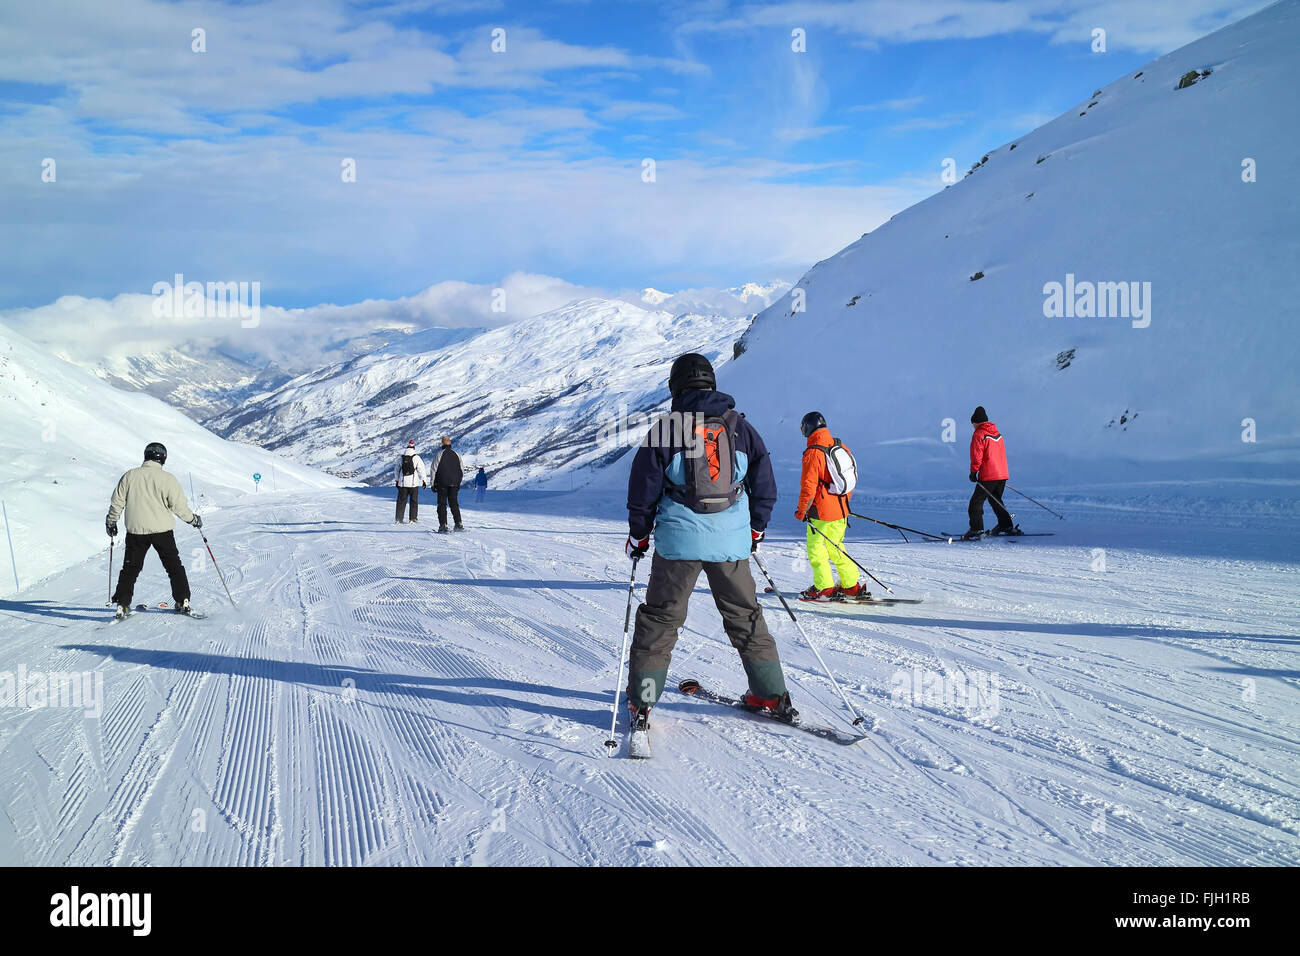 Skiing downhill in French Alps Three valleys ski resort on sunny winter day - Stock Image